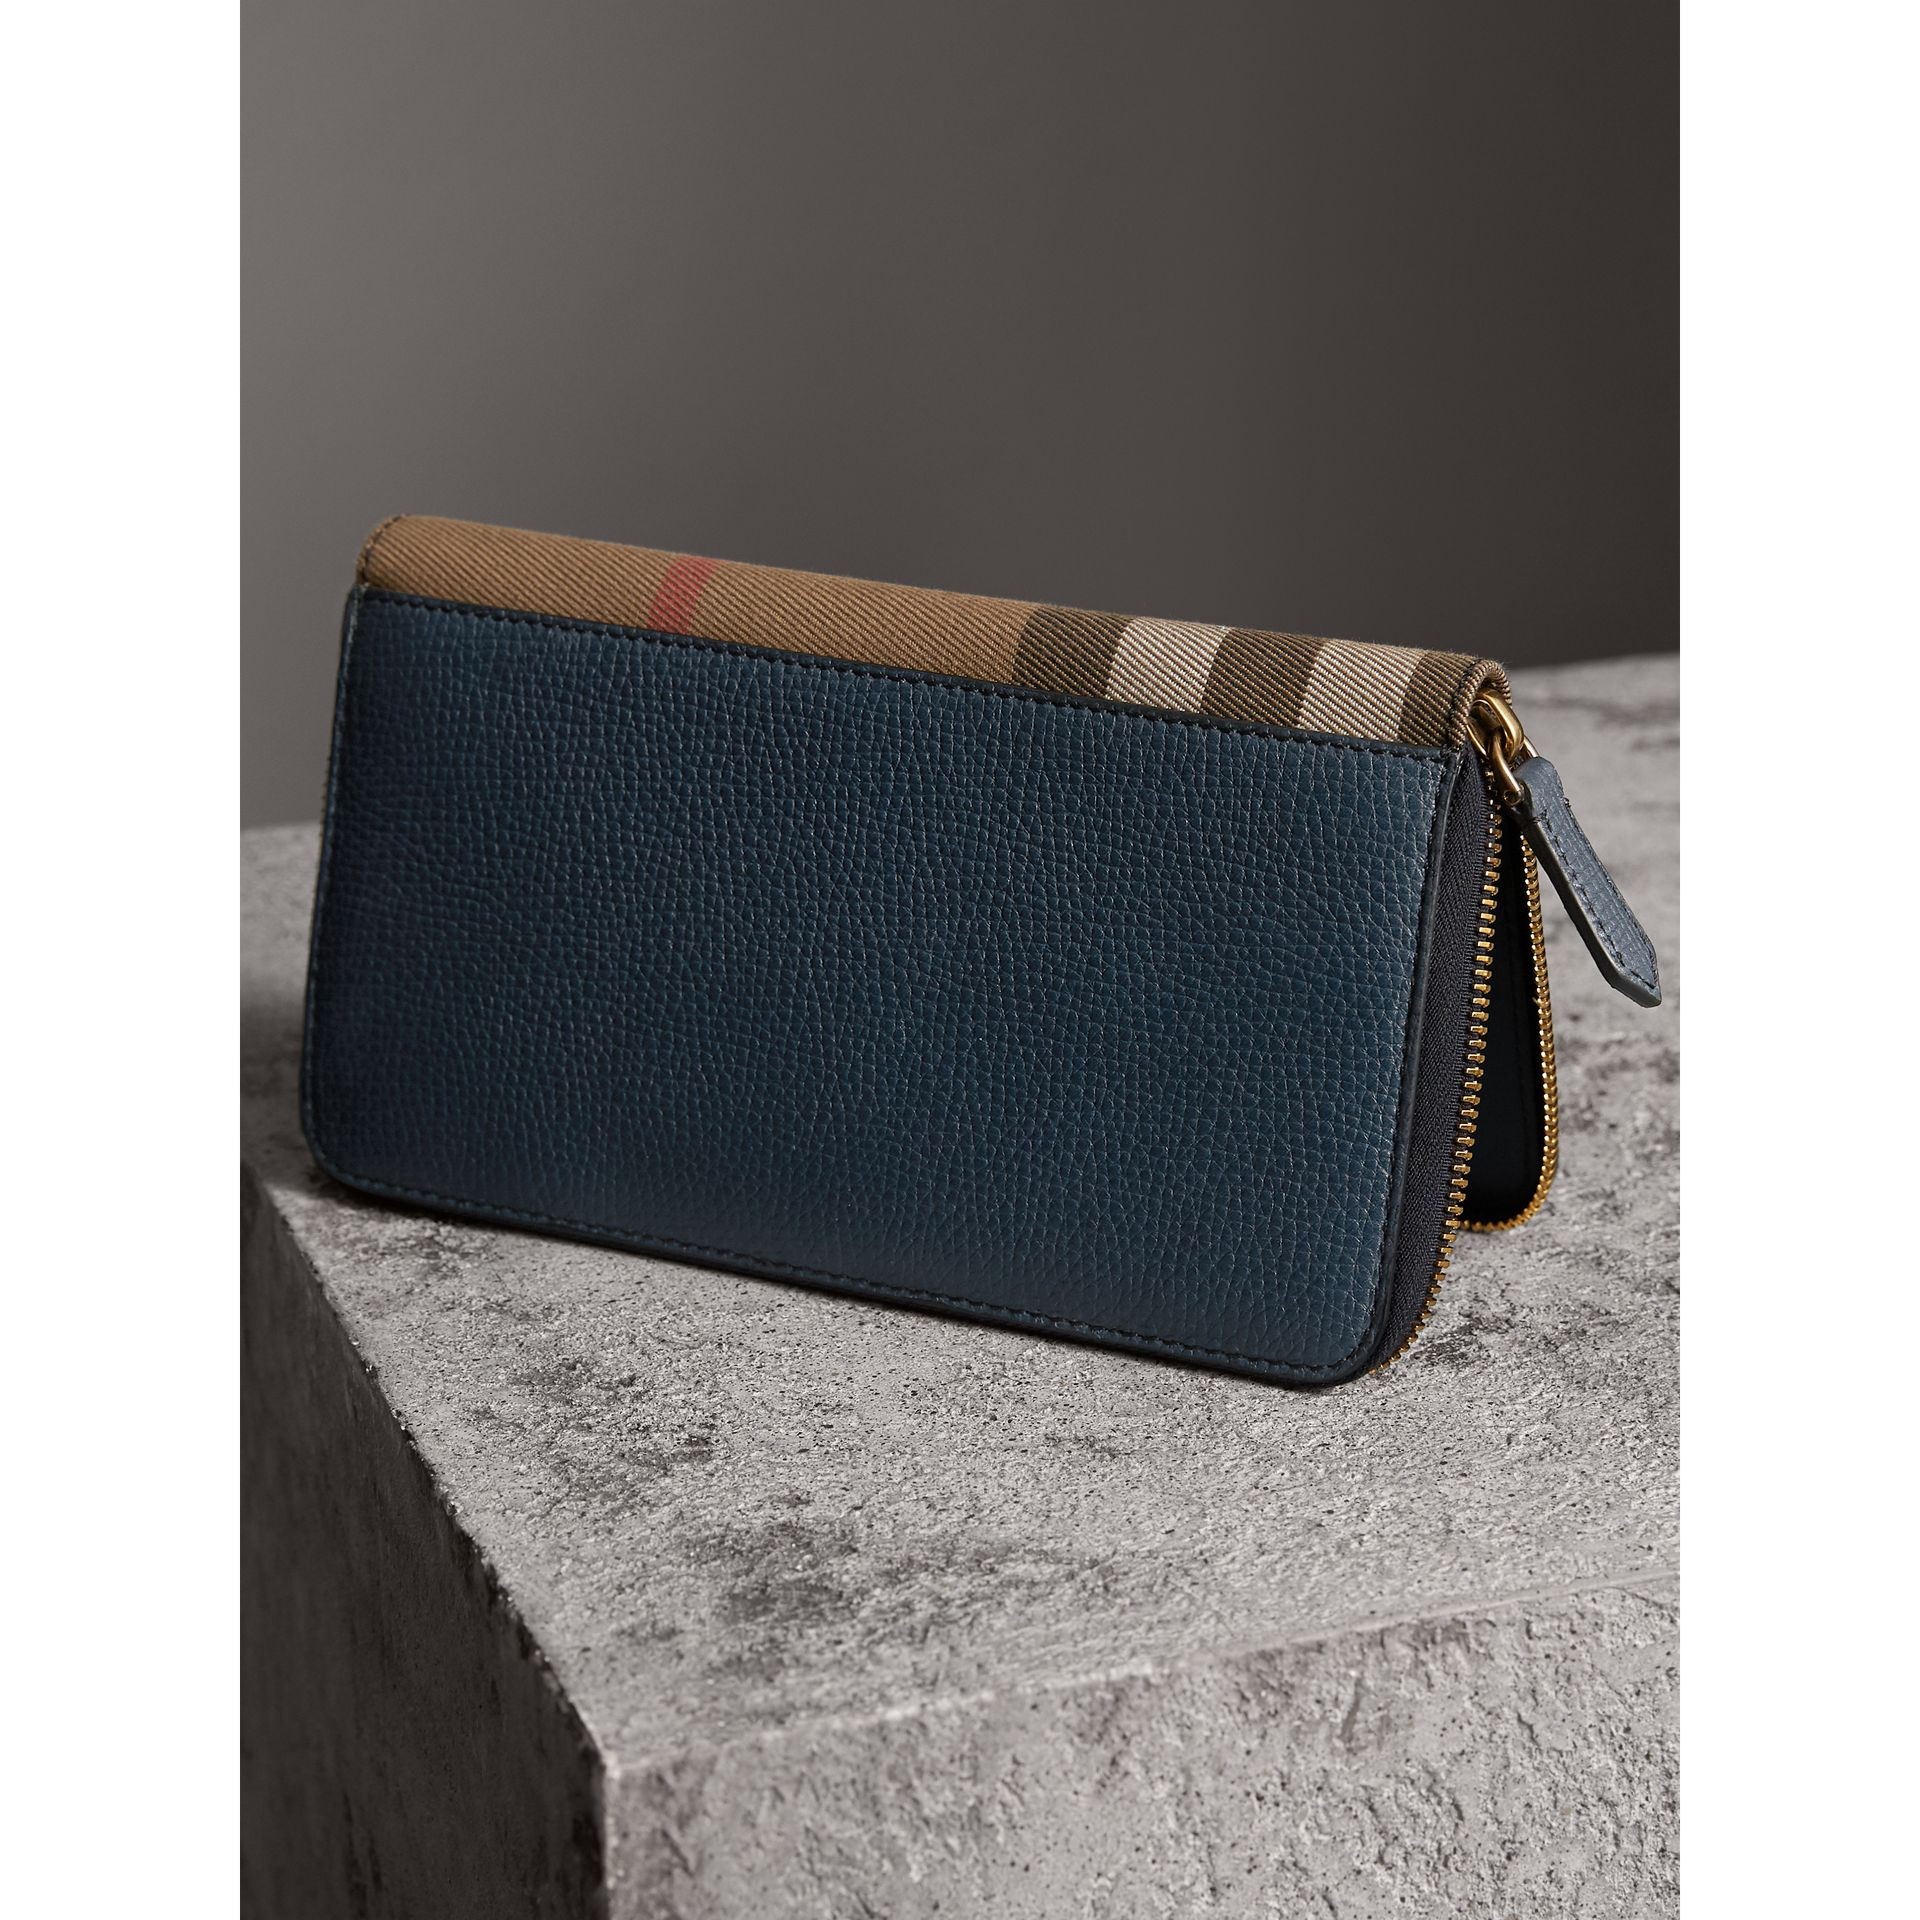 House Check and Grainy Leather Ziparound Wallet in Storm Blue | Burberry - gallery image 3